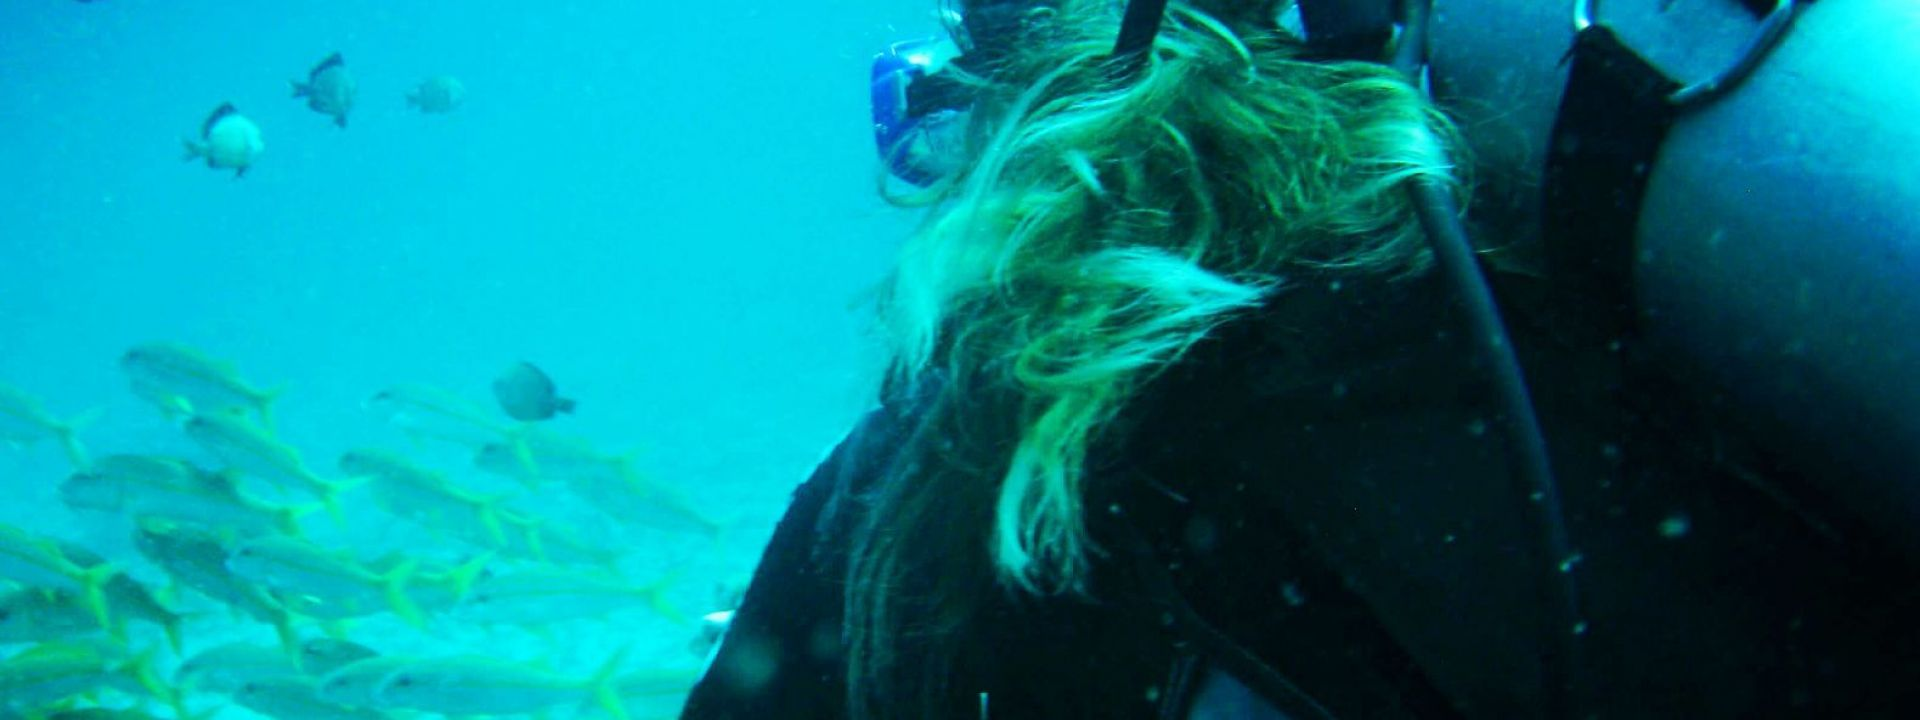 Lili diving padangbai in Bali